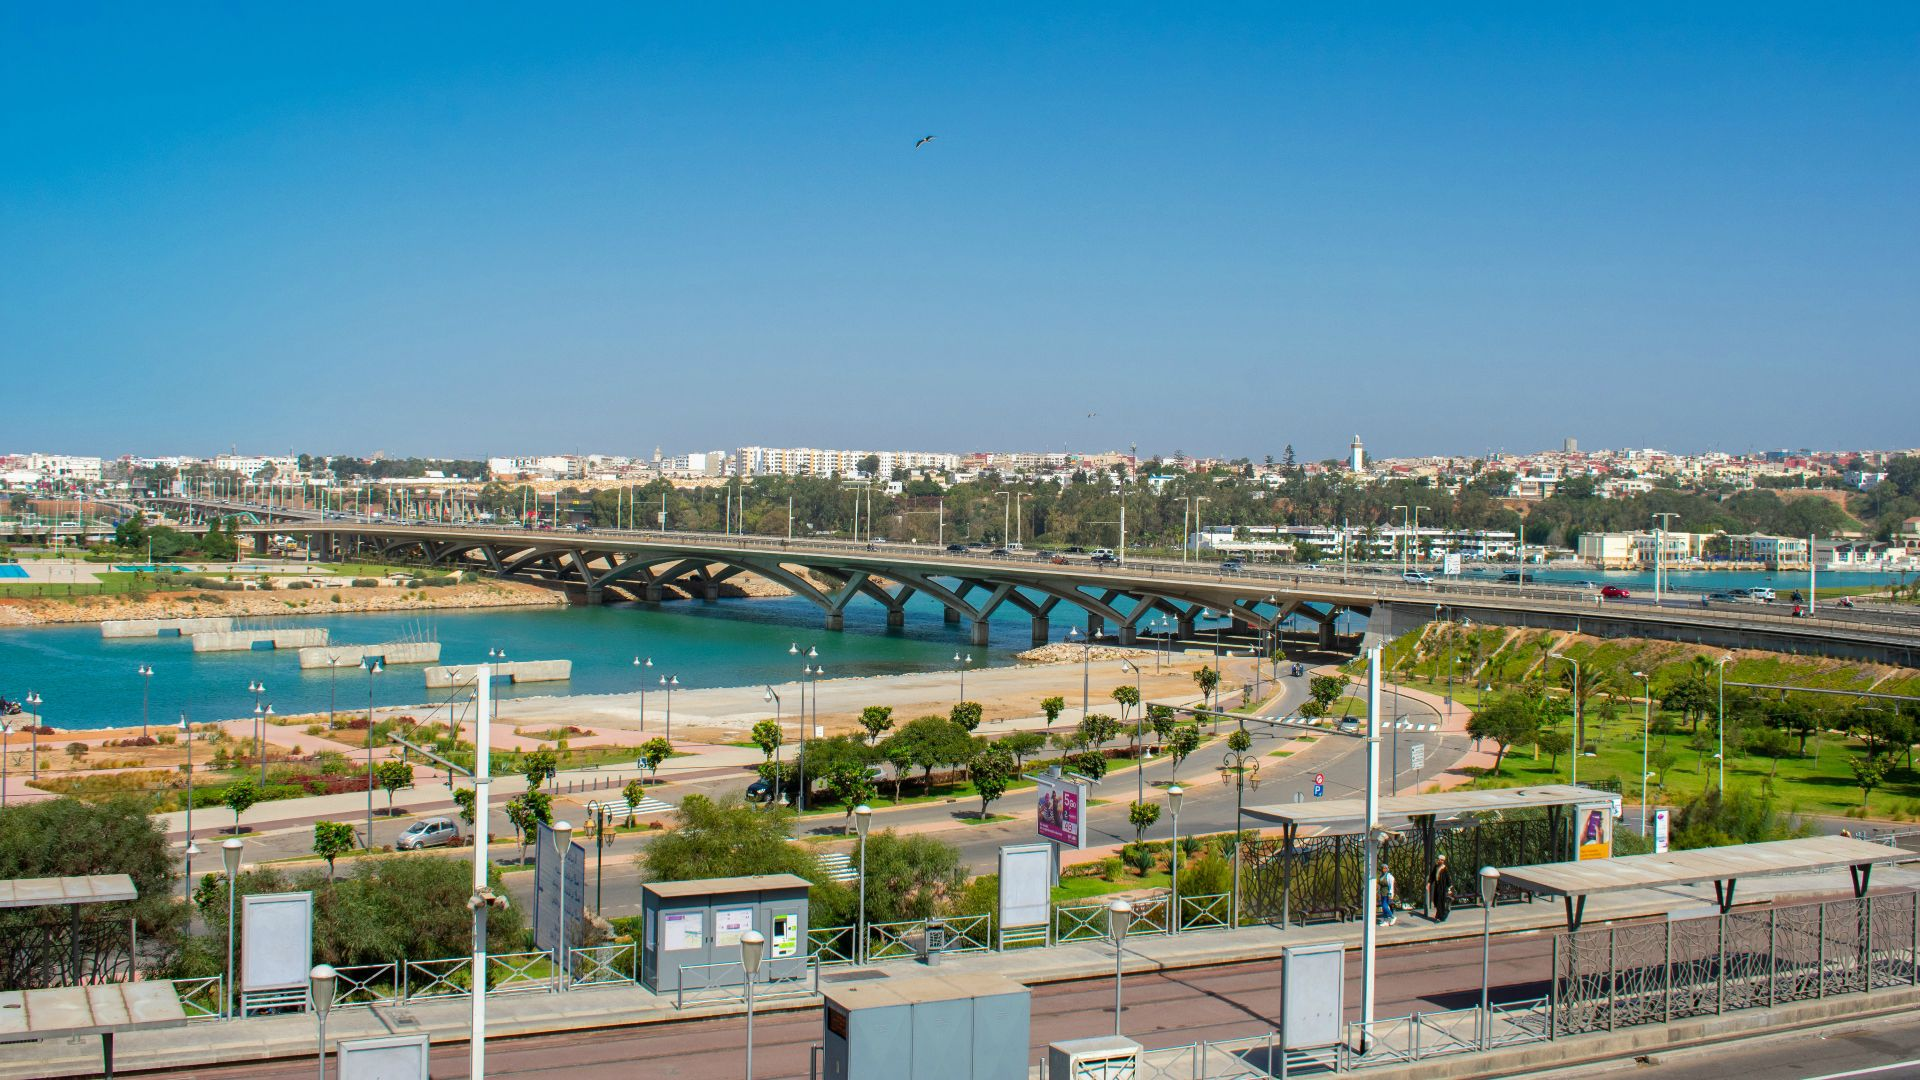 Veolia has raised US$84 million to finance an important water infrastructure project in Rabat